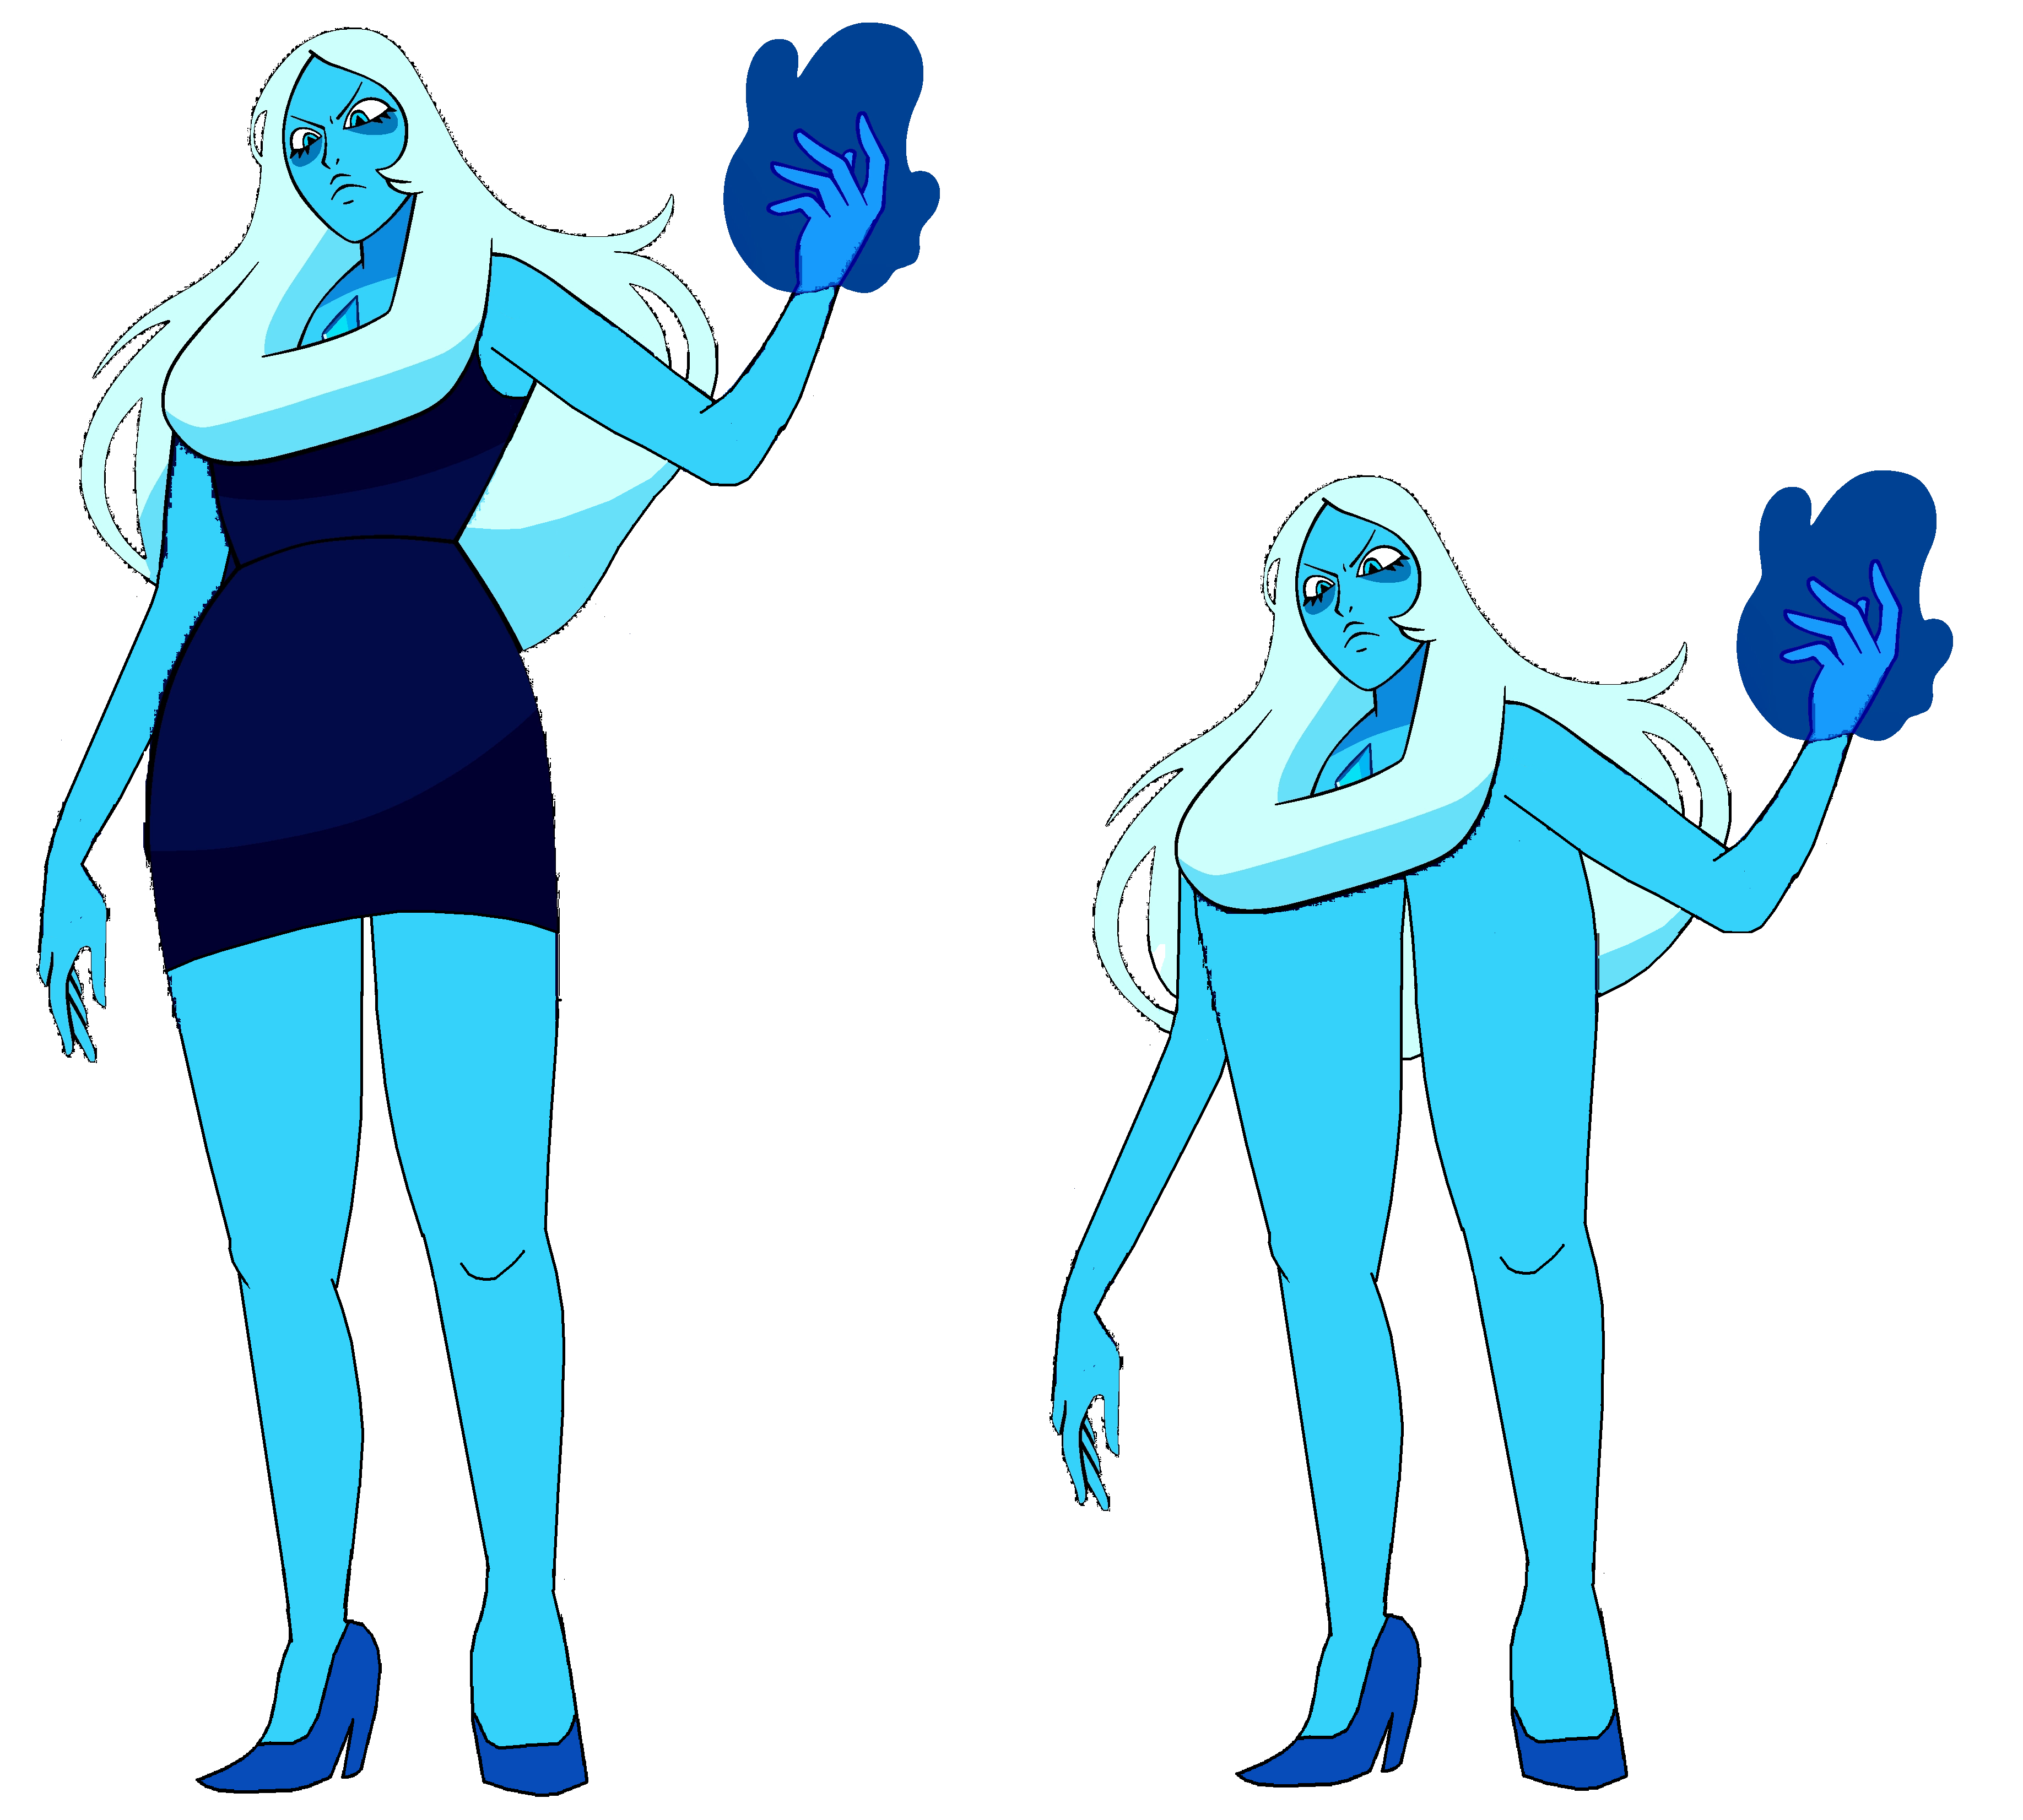 Bless me father for i have sinned clipart png transparent Forgive me father for I have sinned : stevenuniverse png transparent